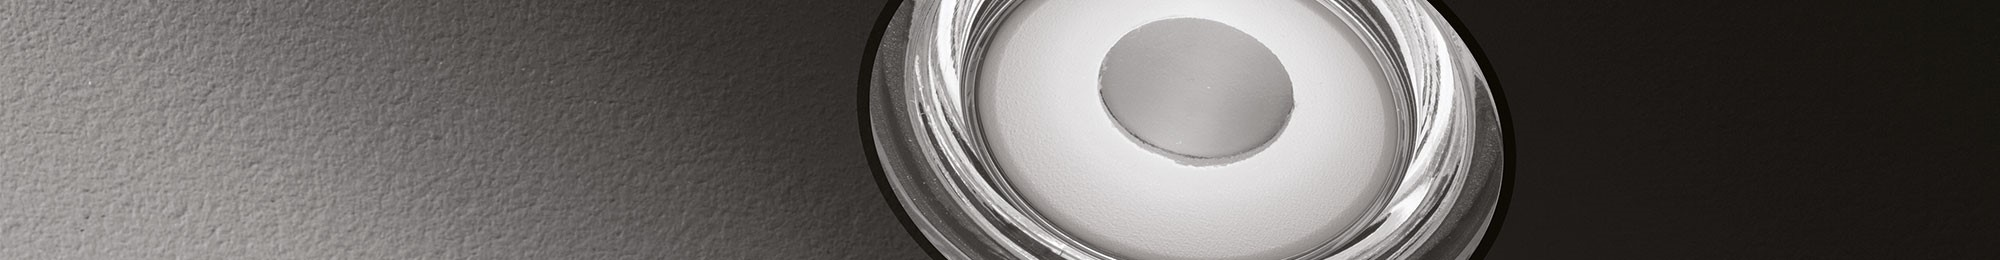 Ceiling recessed - Landa Illuminotecnica